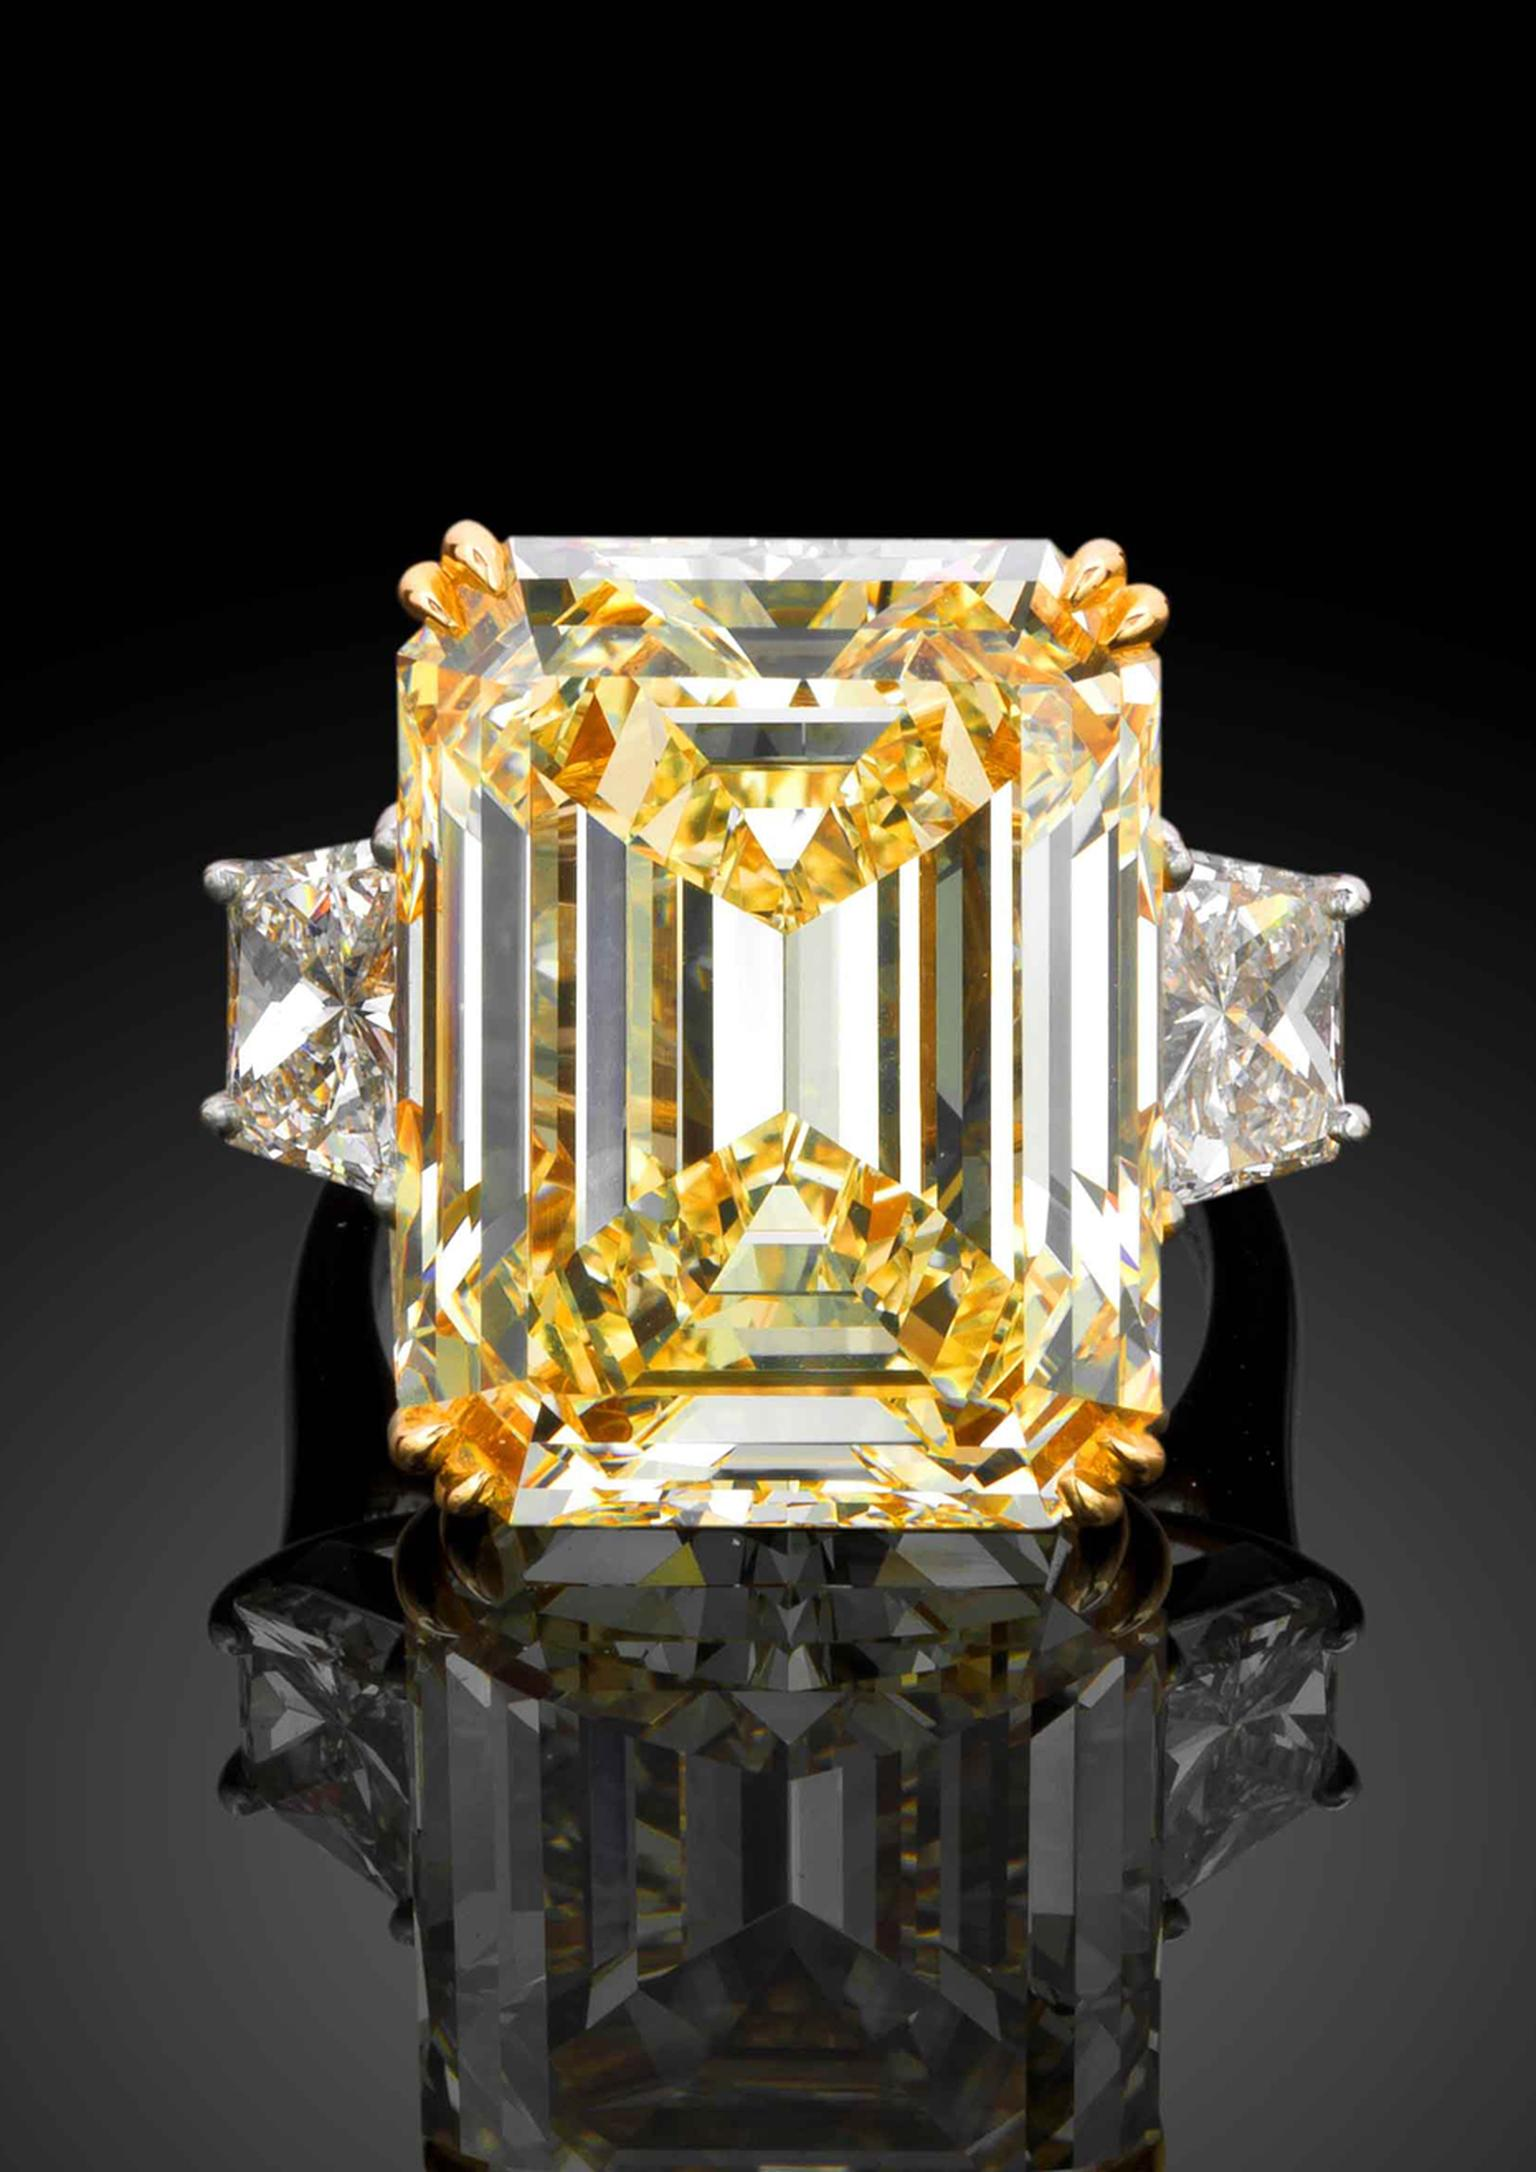 Star Diamond yellow diamond engagement ring with a 21.18ct VS1 clarity emerald-cut yellow diamond flanked by two trapeze-cut white diamonds (£POA).